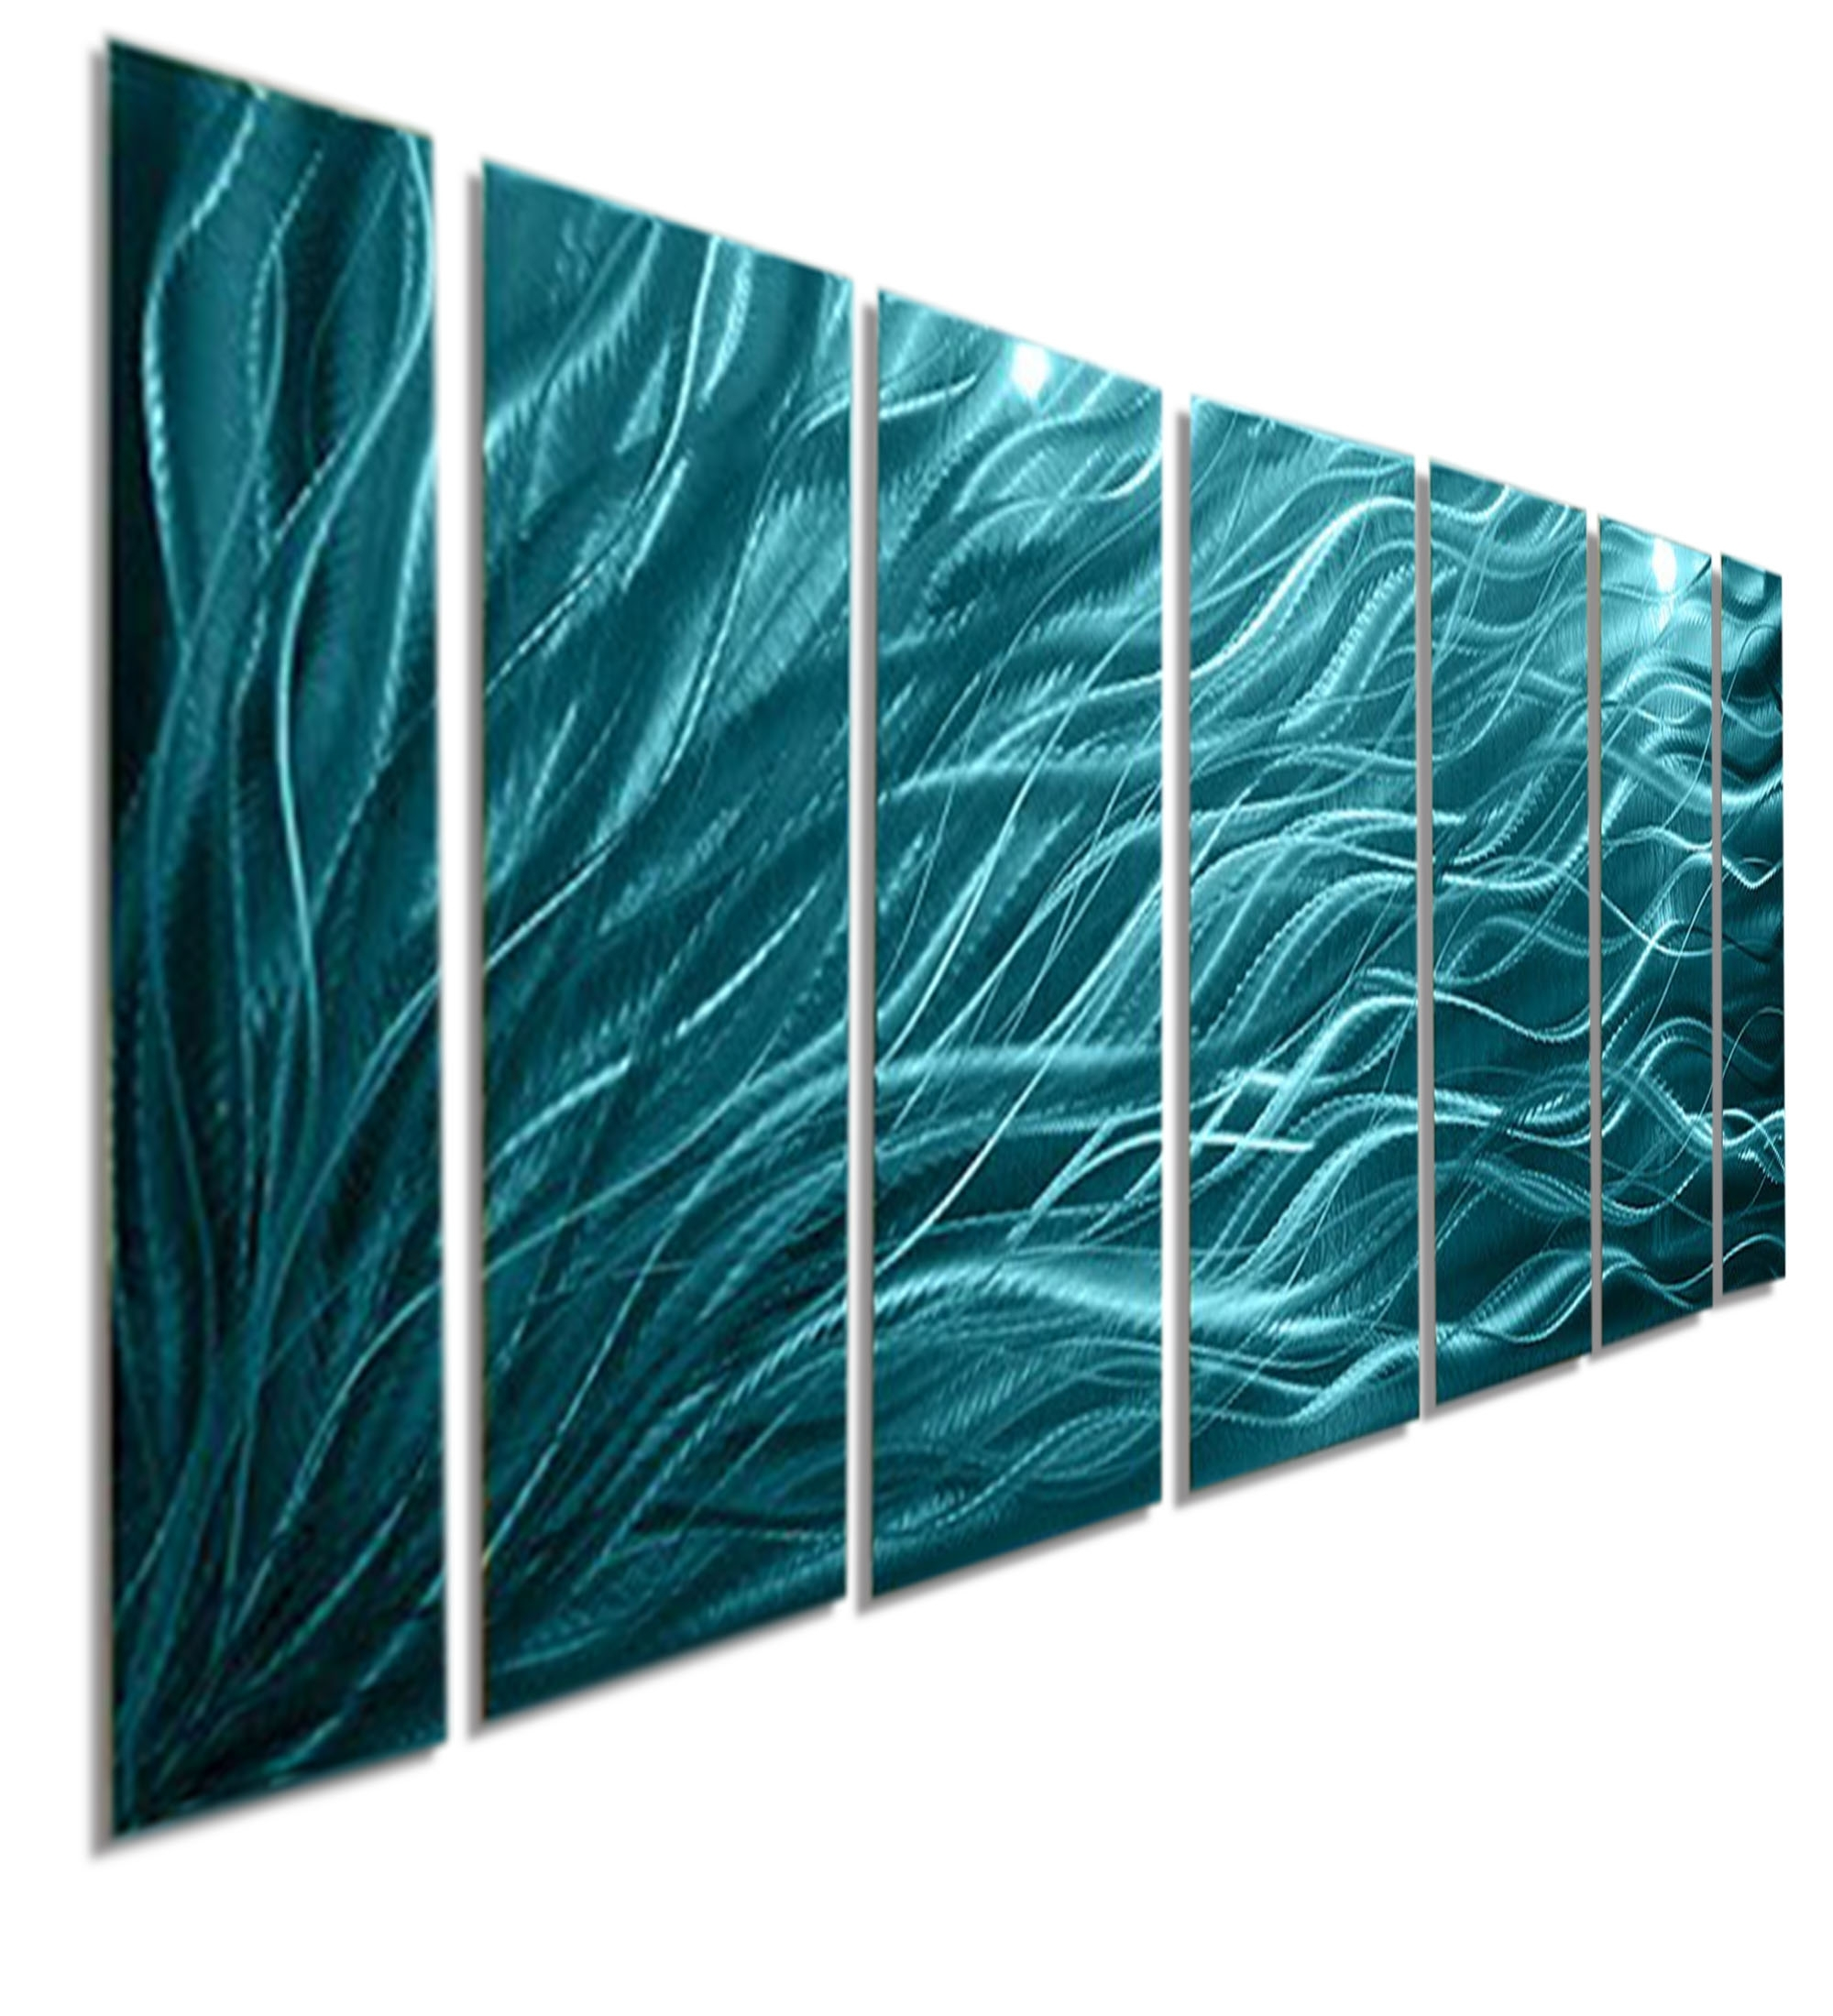 Rays Of Hope Aqua – Large Modern Abstract Metal Wall Artjon Throughout Newest Aqua Abstract Wall Art (View 15 of 20)